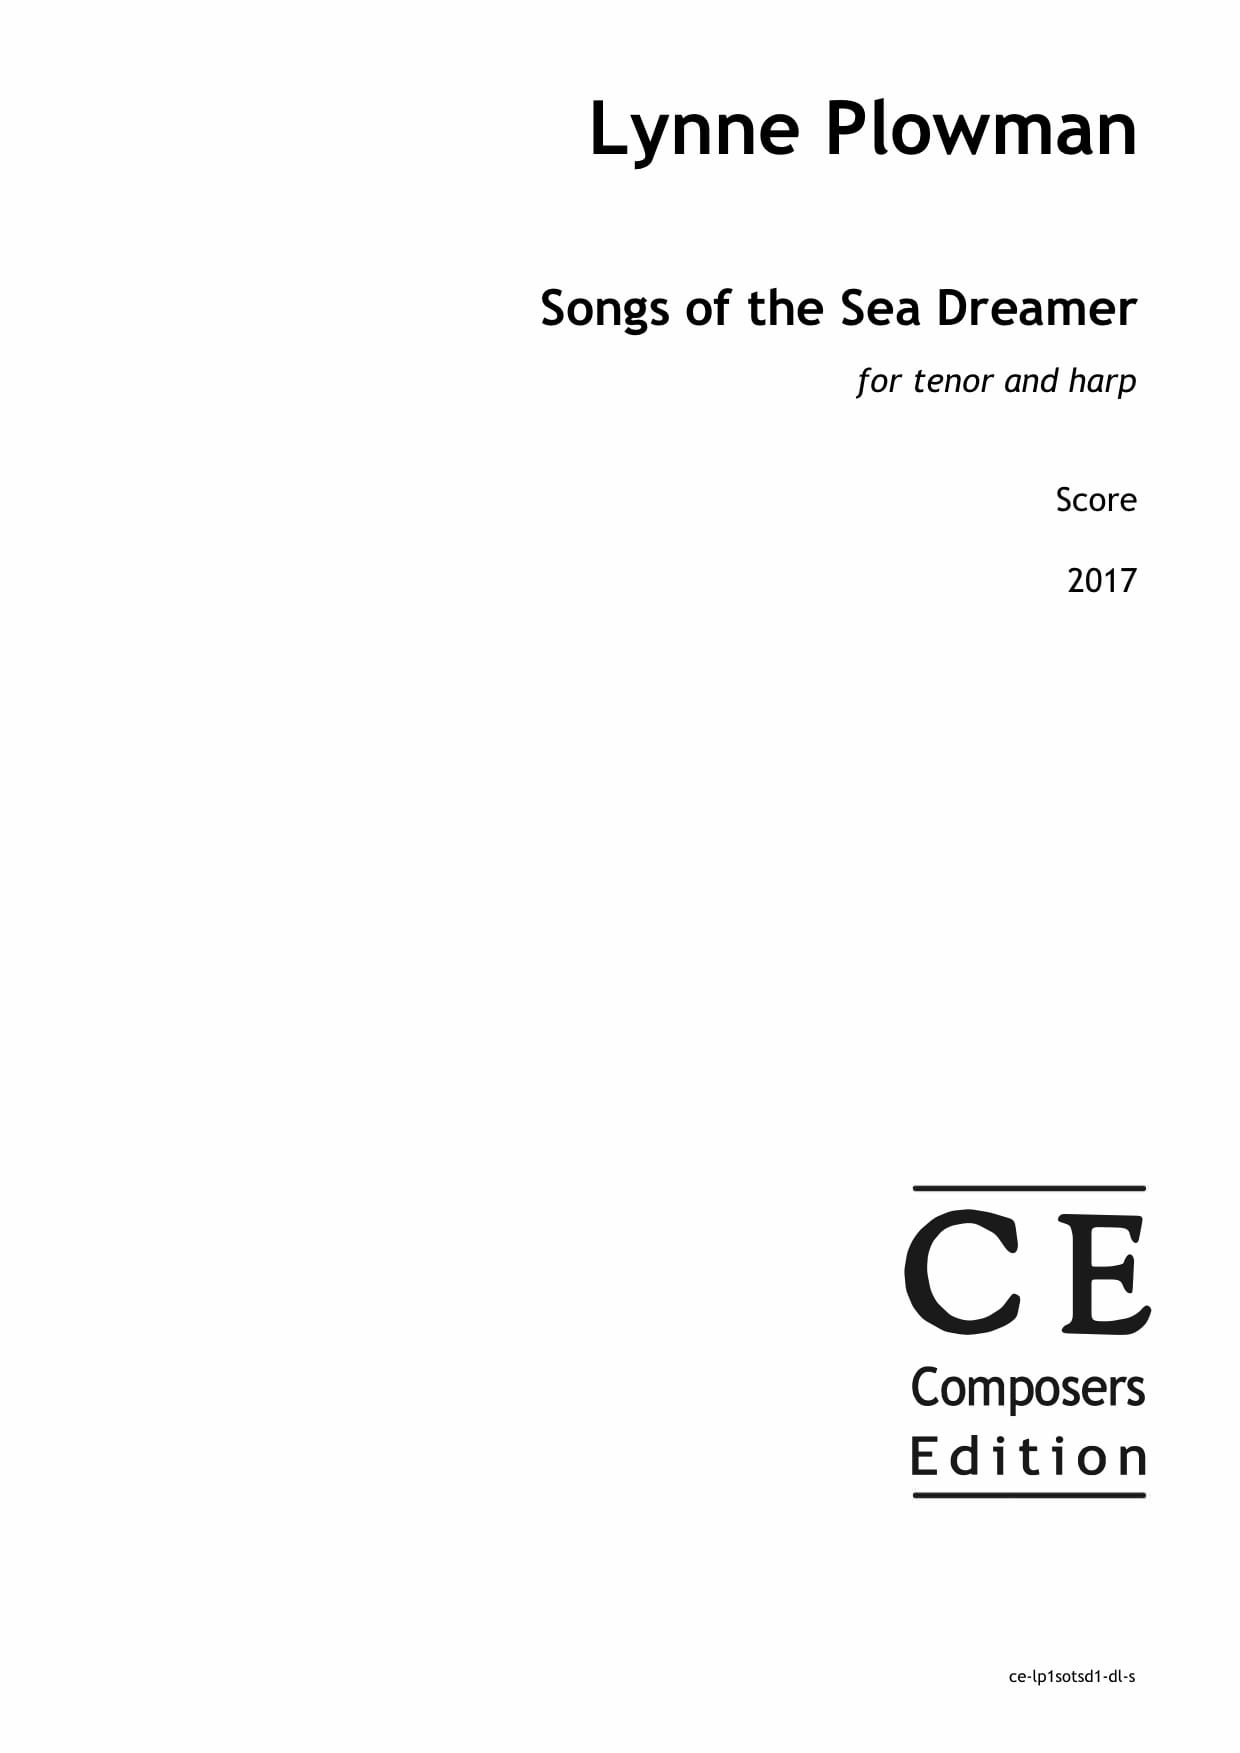 Lynne Plowman: Songs of the Sea Dreamer for tenor and harp